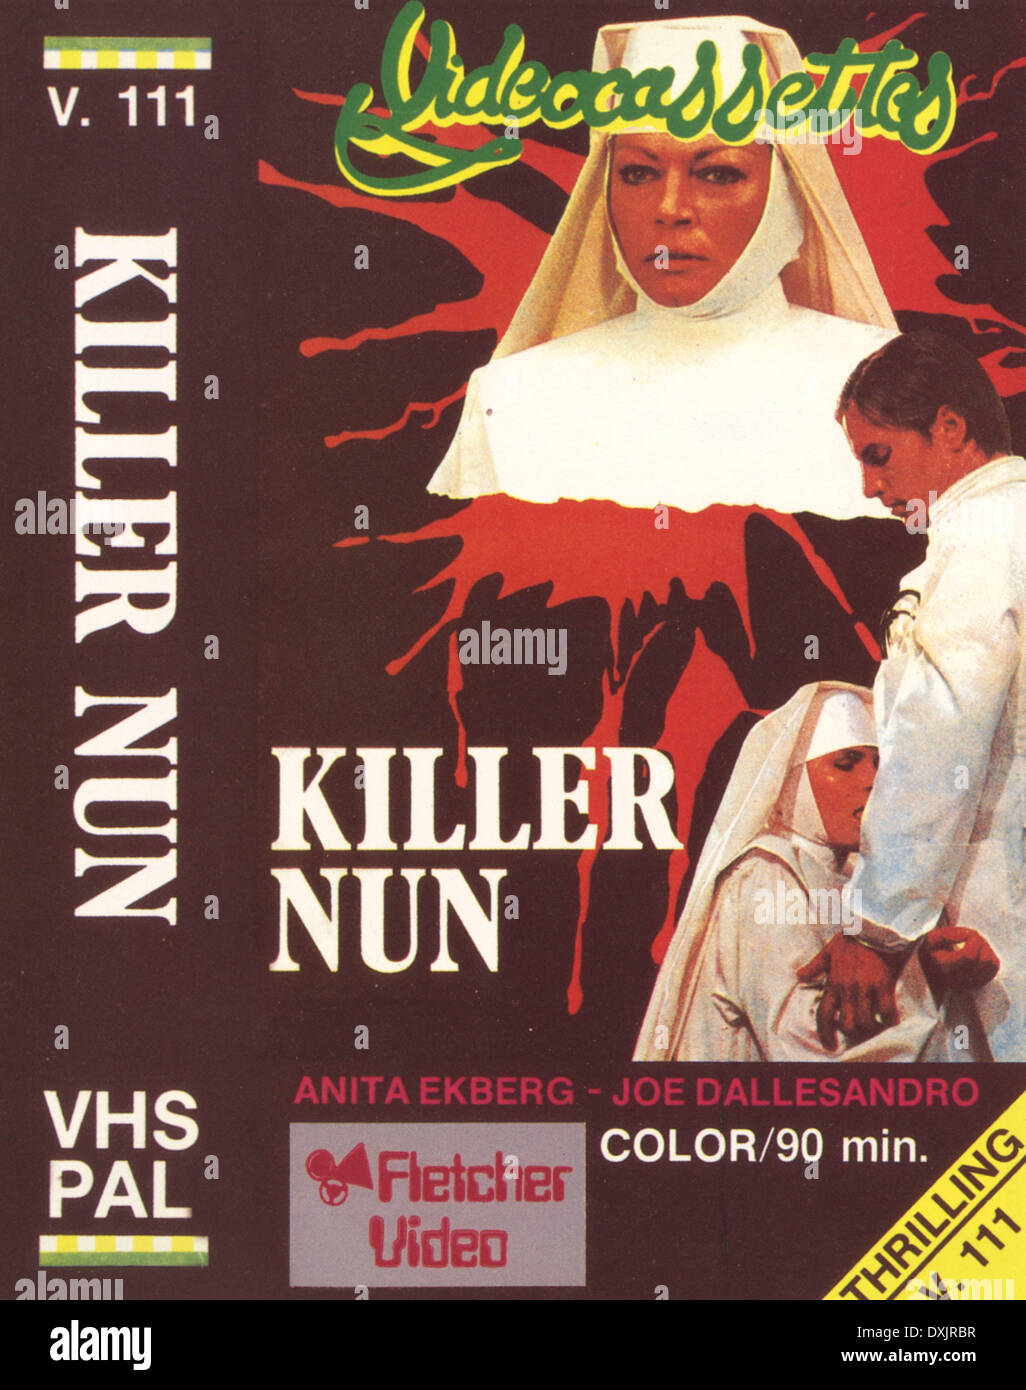 KILLER NUN (1978) PHOTO DE LA RONALD GRANT ARCHIVE Photo Stock